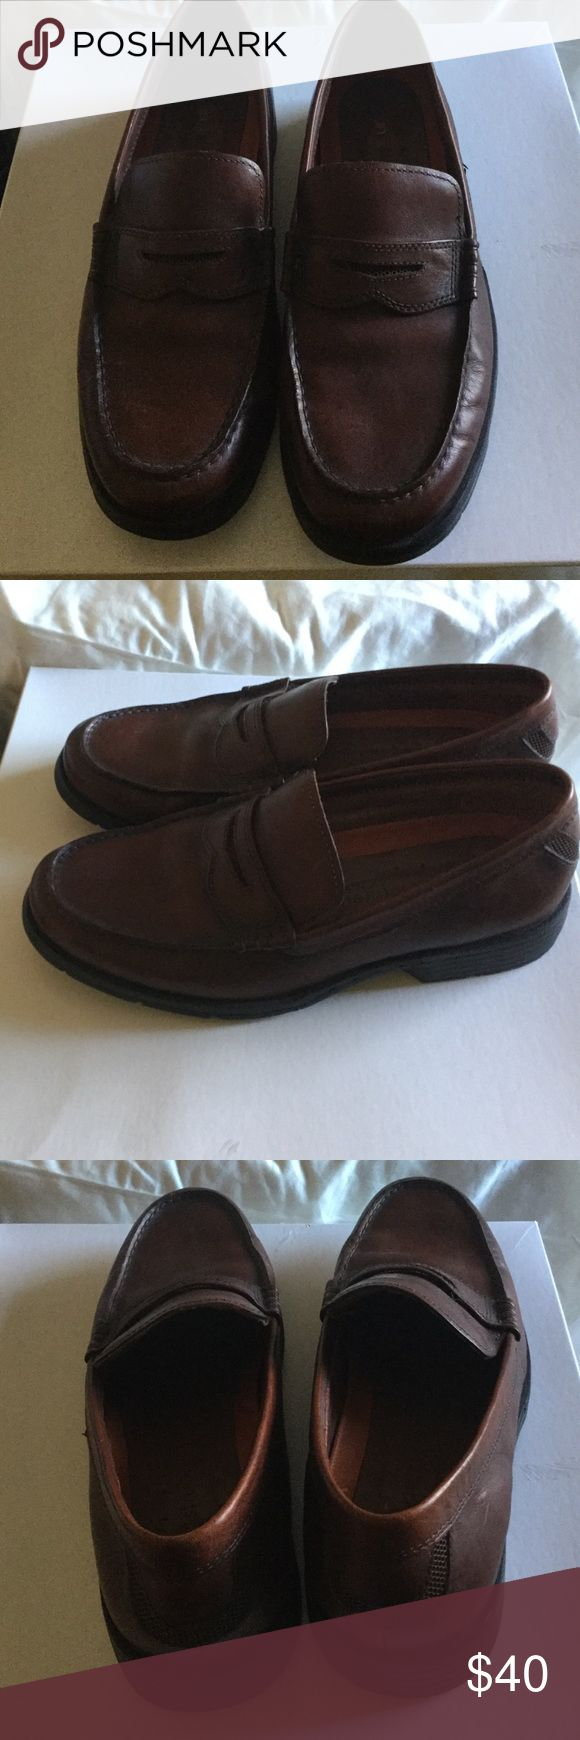 Mens CLARKS unstctured penny loafer Size 9 Excellent condition worn once Shoes